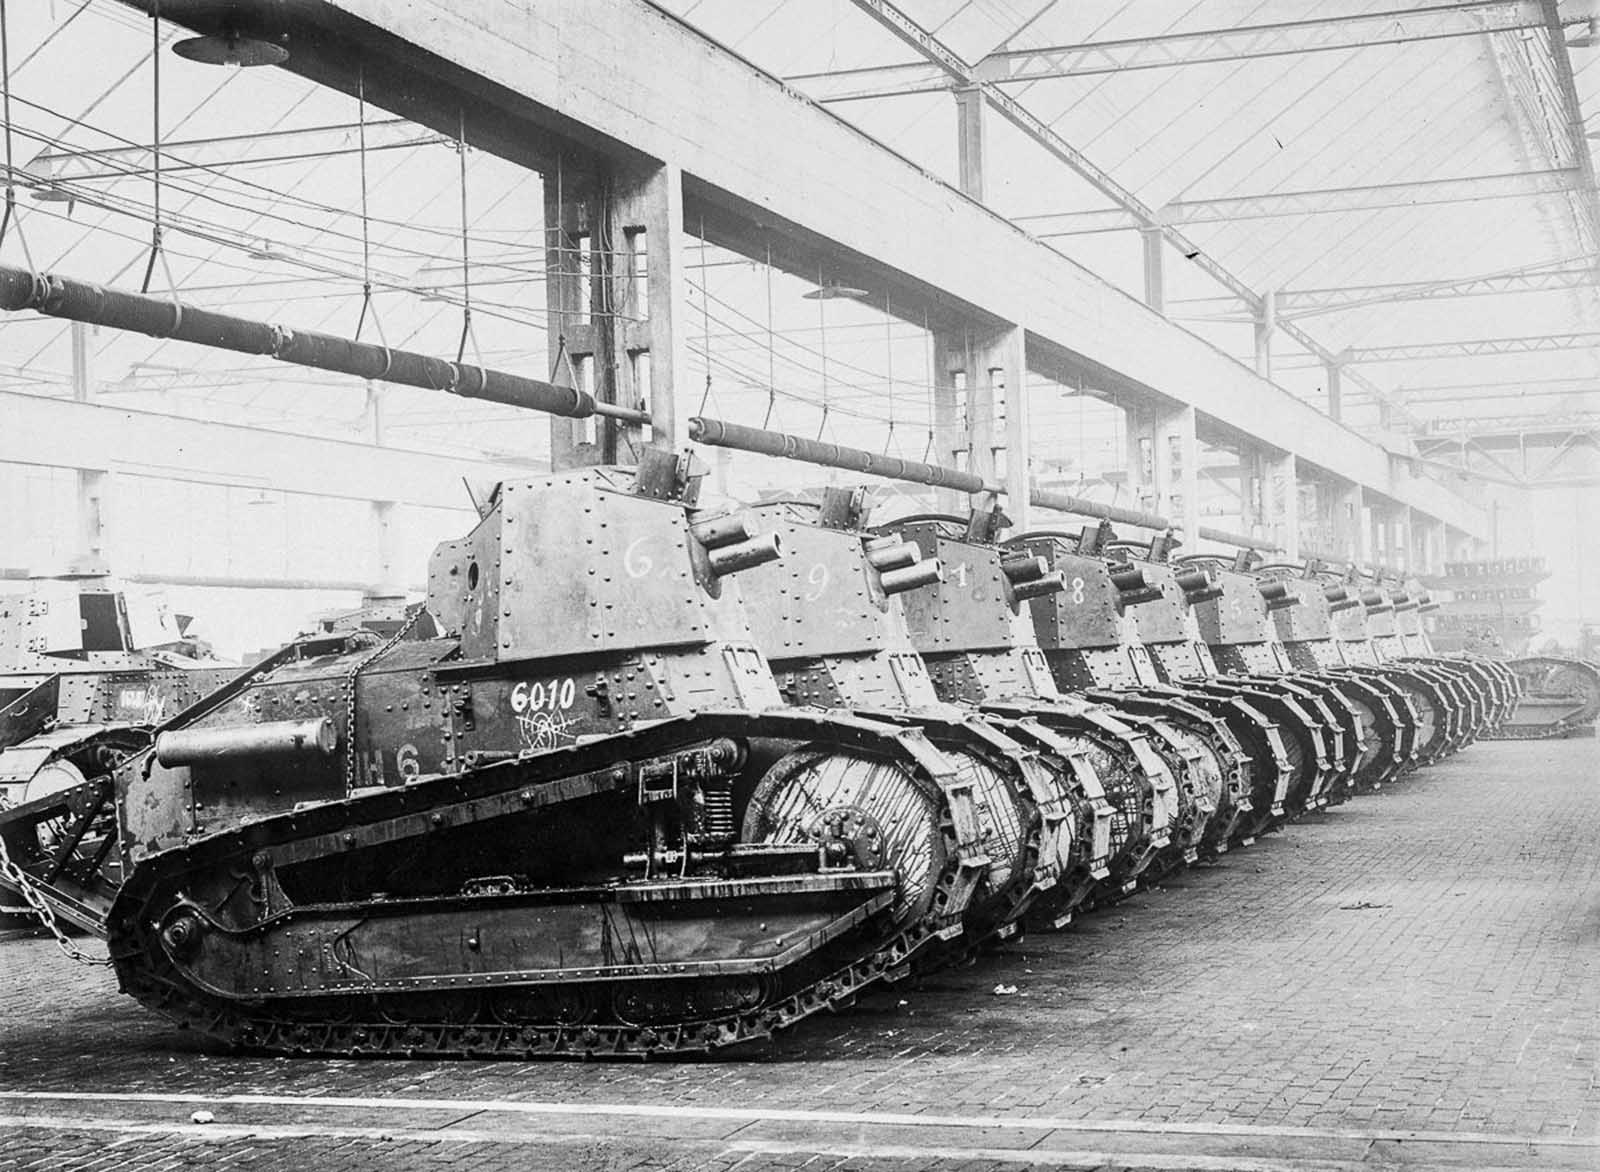 Early Renault tanks built for combat in World War I in a factory in France. 1916.